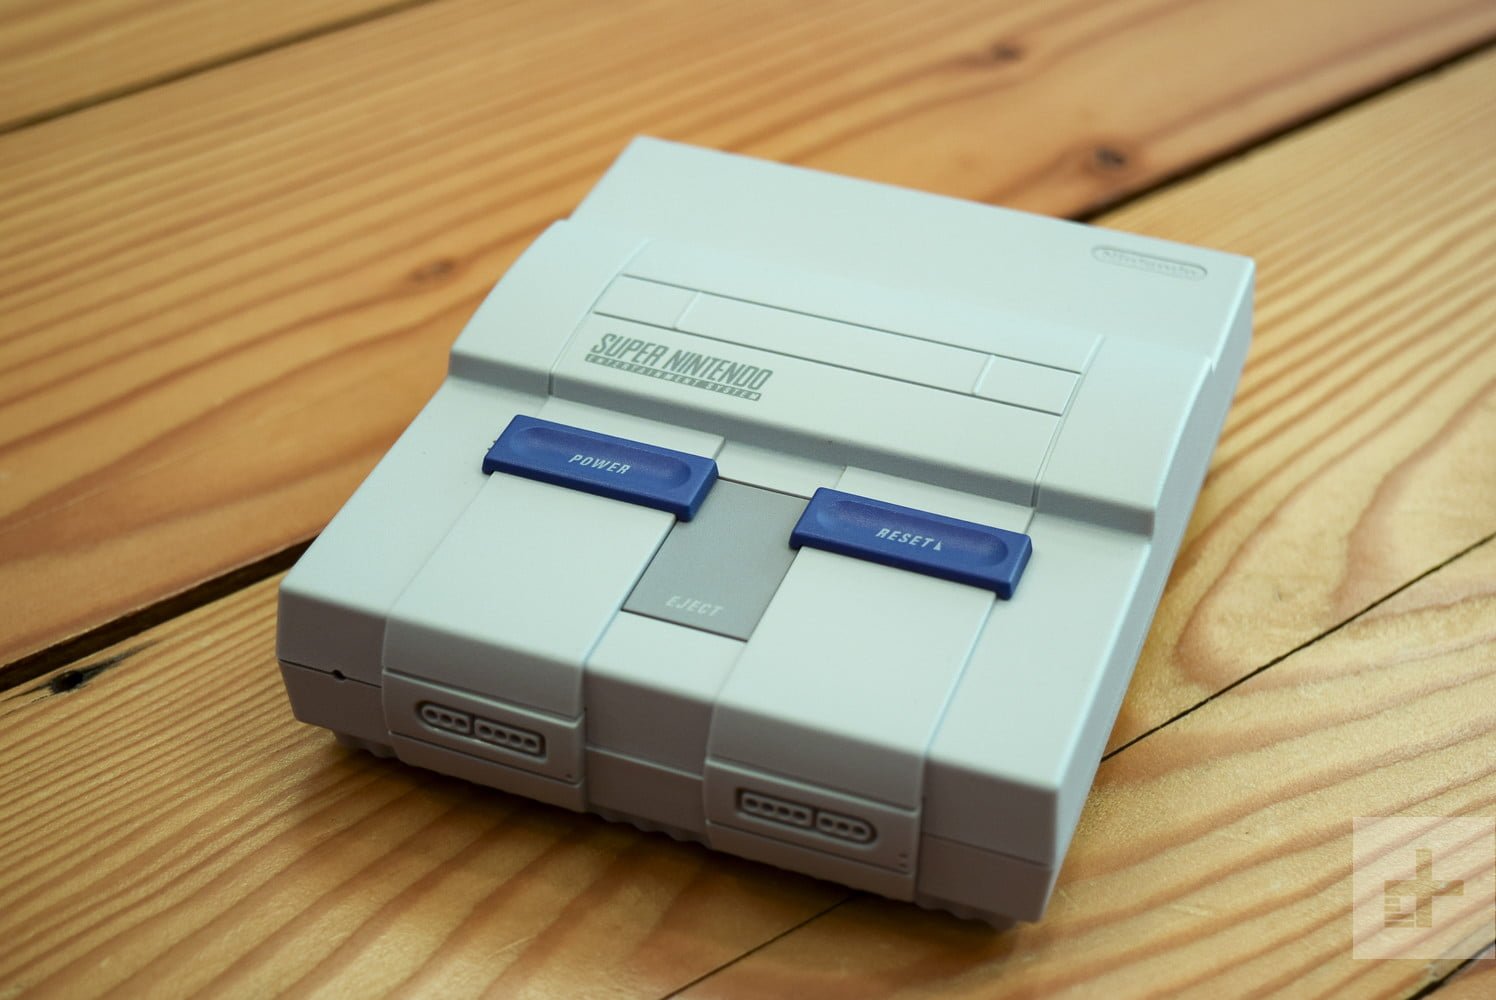 SNES Classic Supports the Hack that Expanded the NES